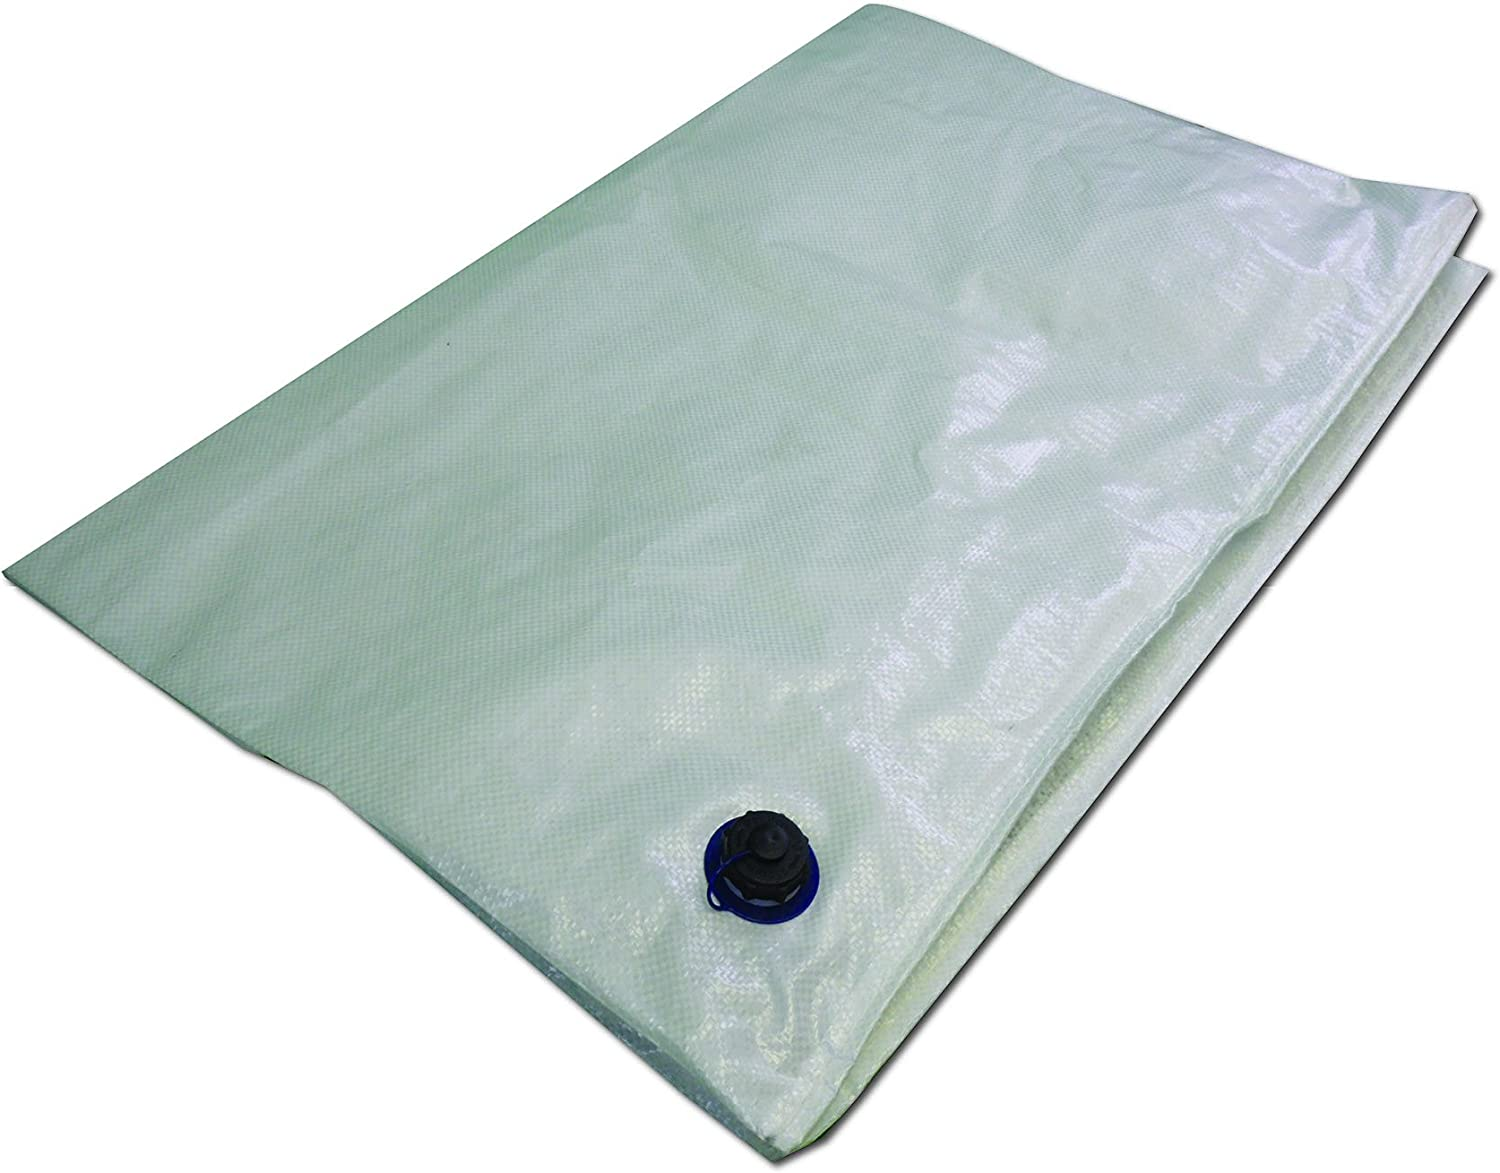 Freight Saver Dunnage Bag 36 x 66 Inflatable Bag. Pack of 5. 100 Percent Recyclable and Reusable. Save Stress and Money.